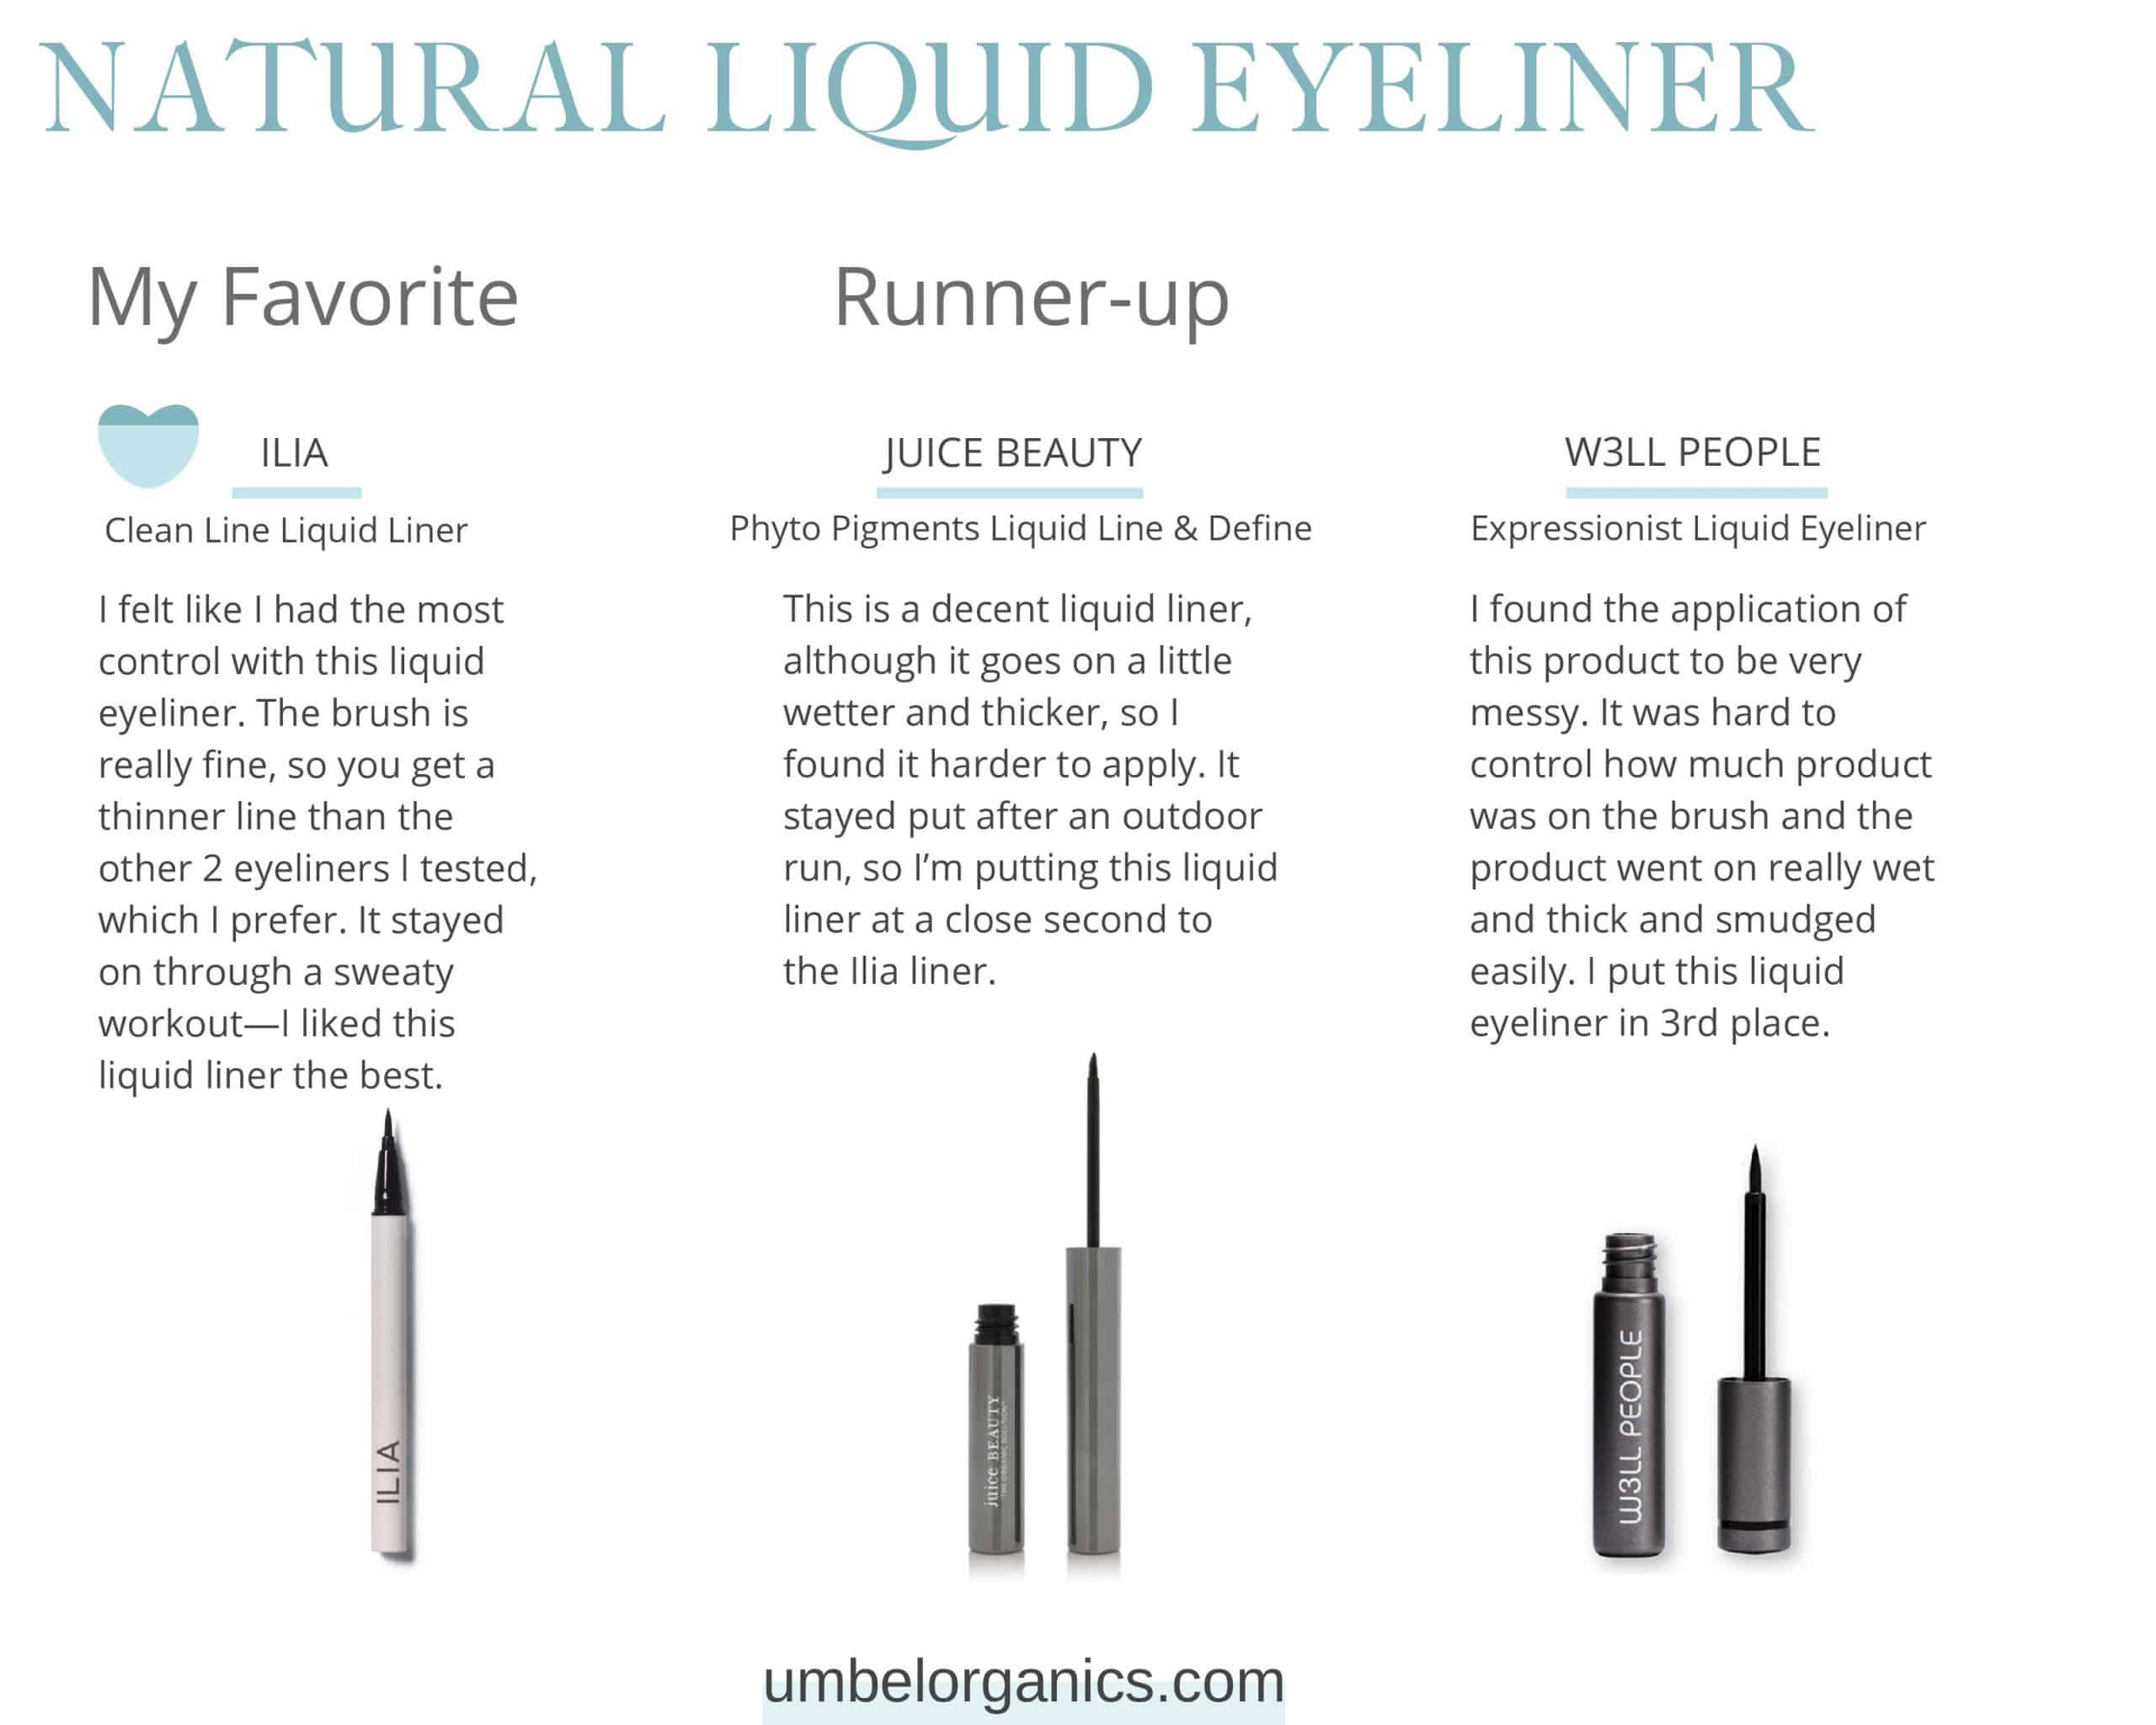 3 Brands of Natural Liquid Eyeliner